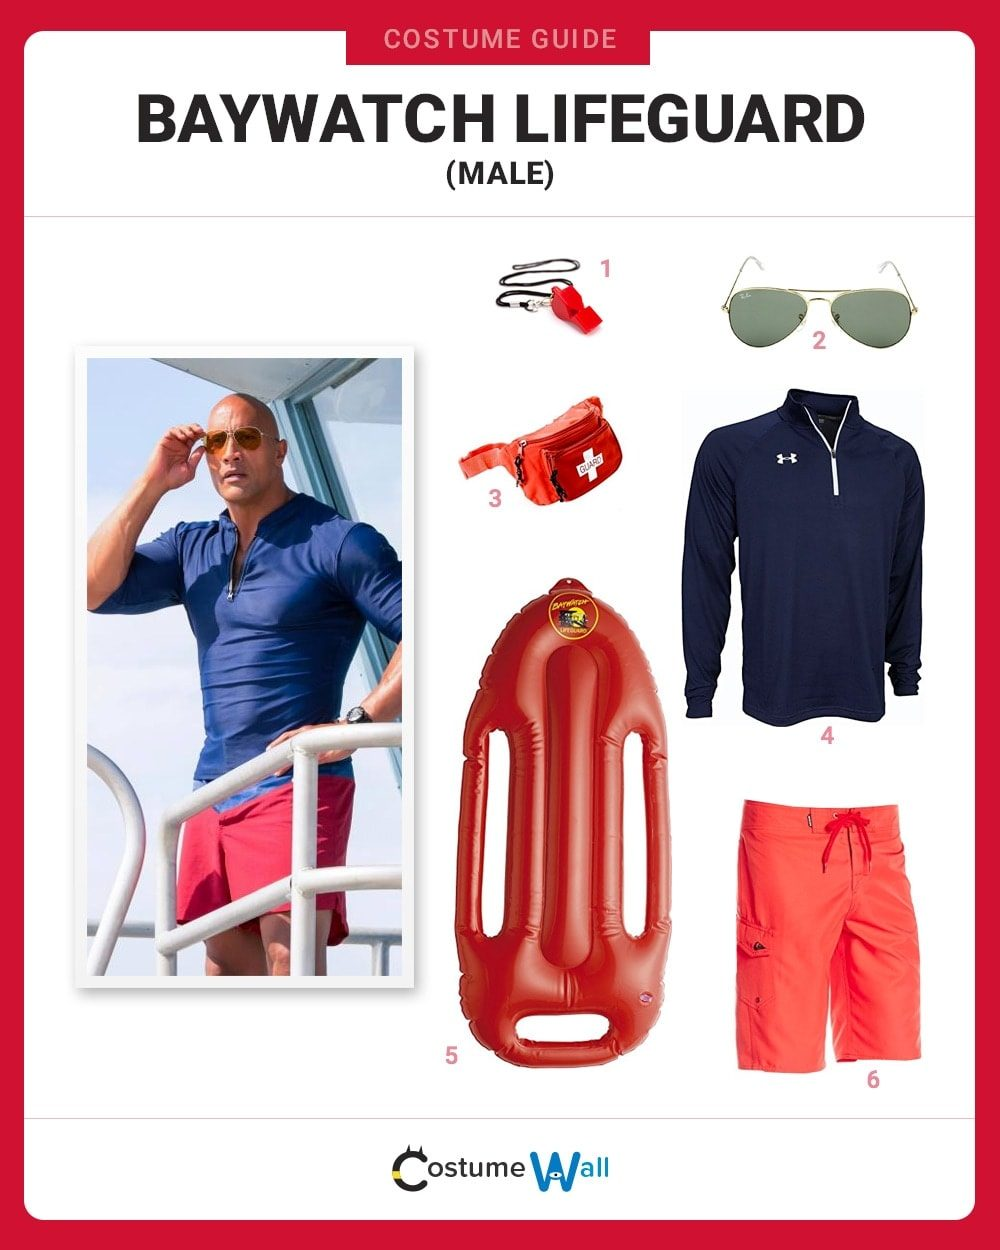 Baywatch Lifeguard (Male) Costume